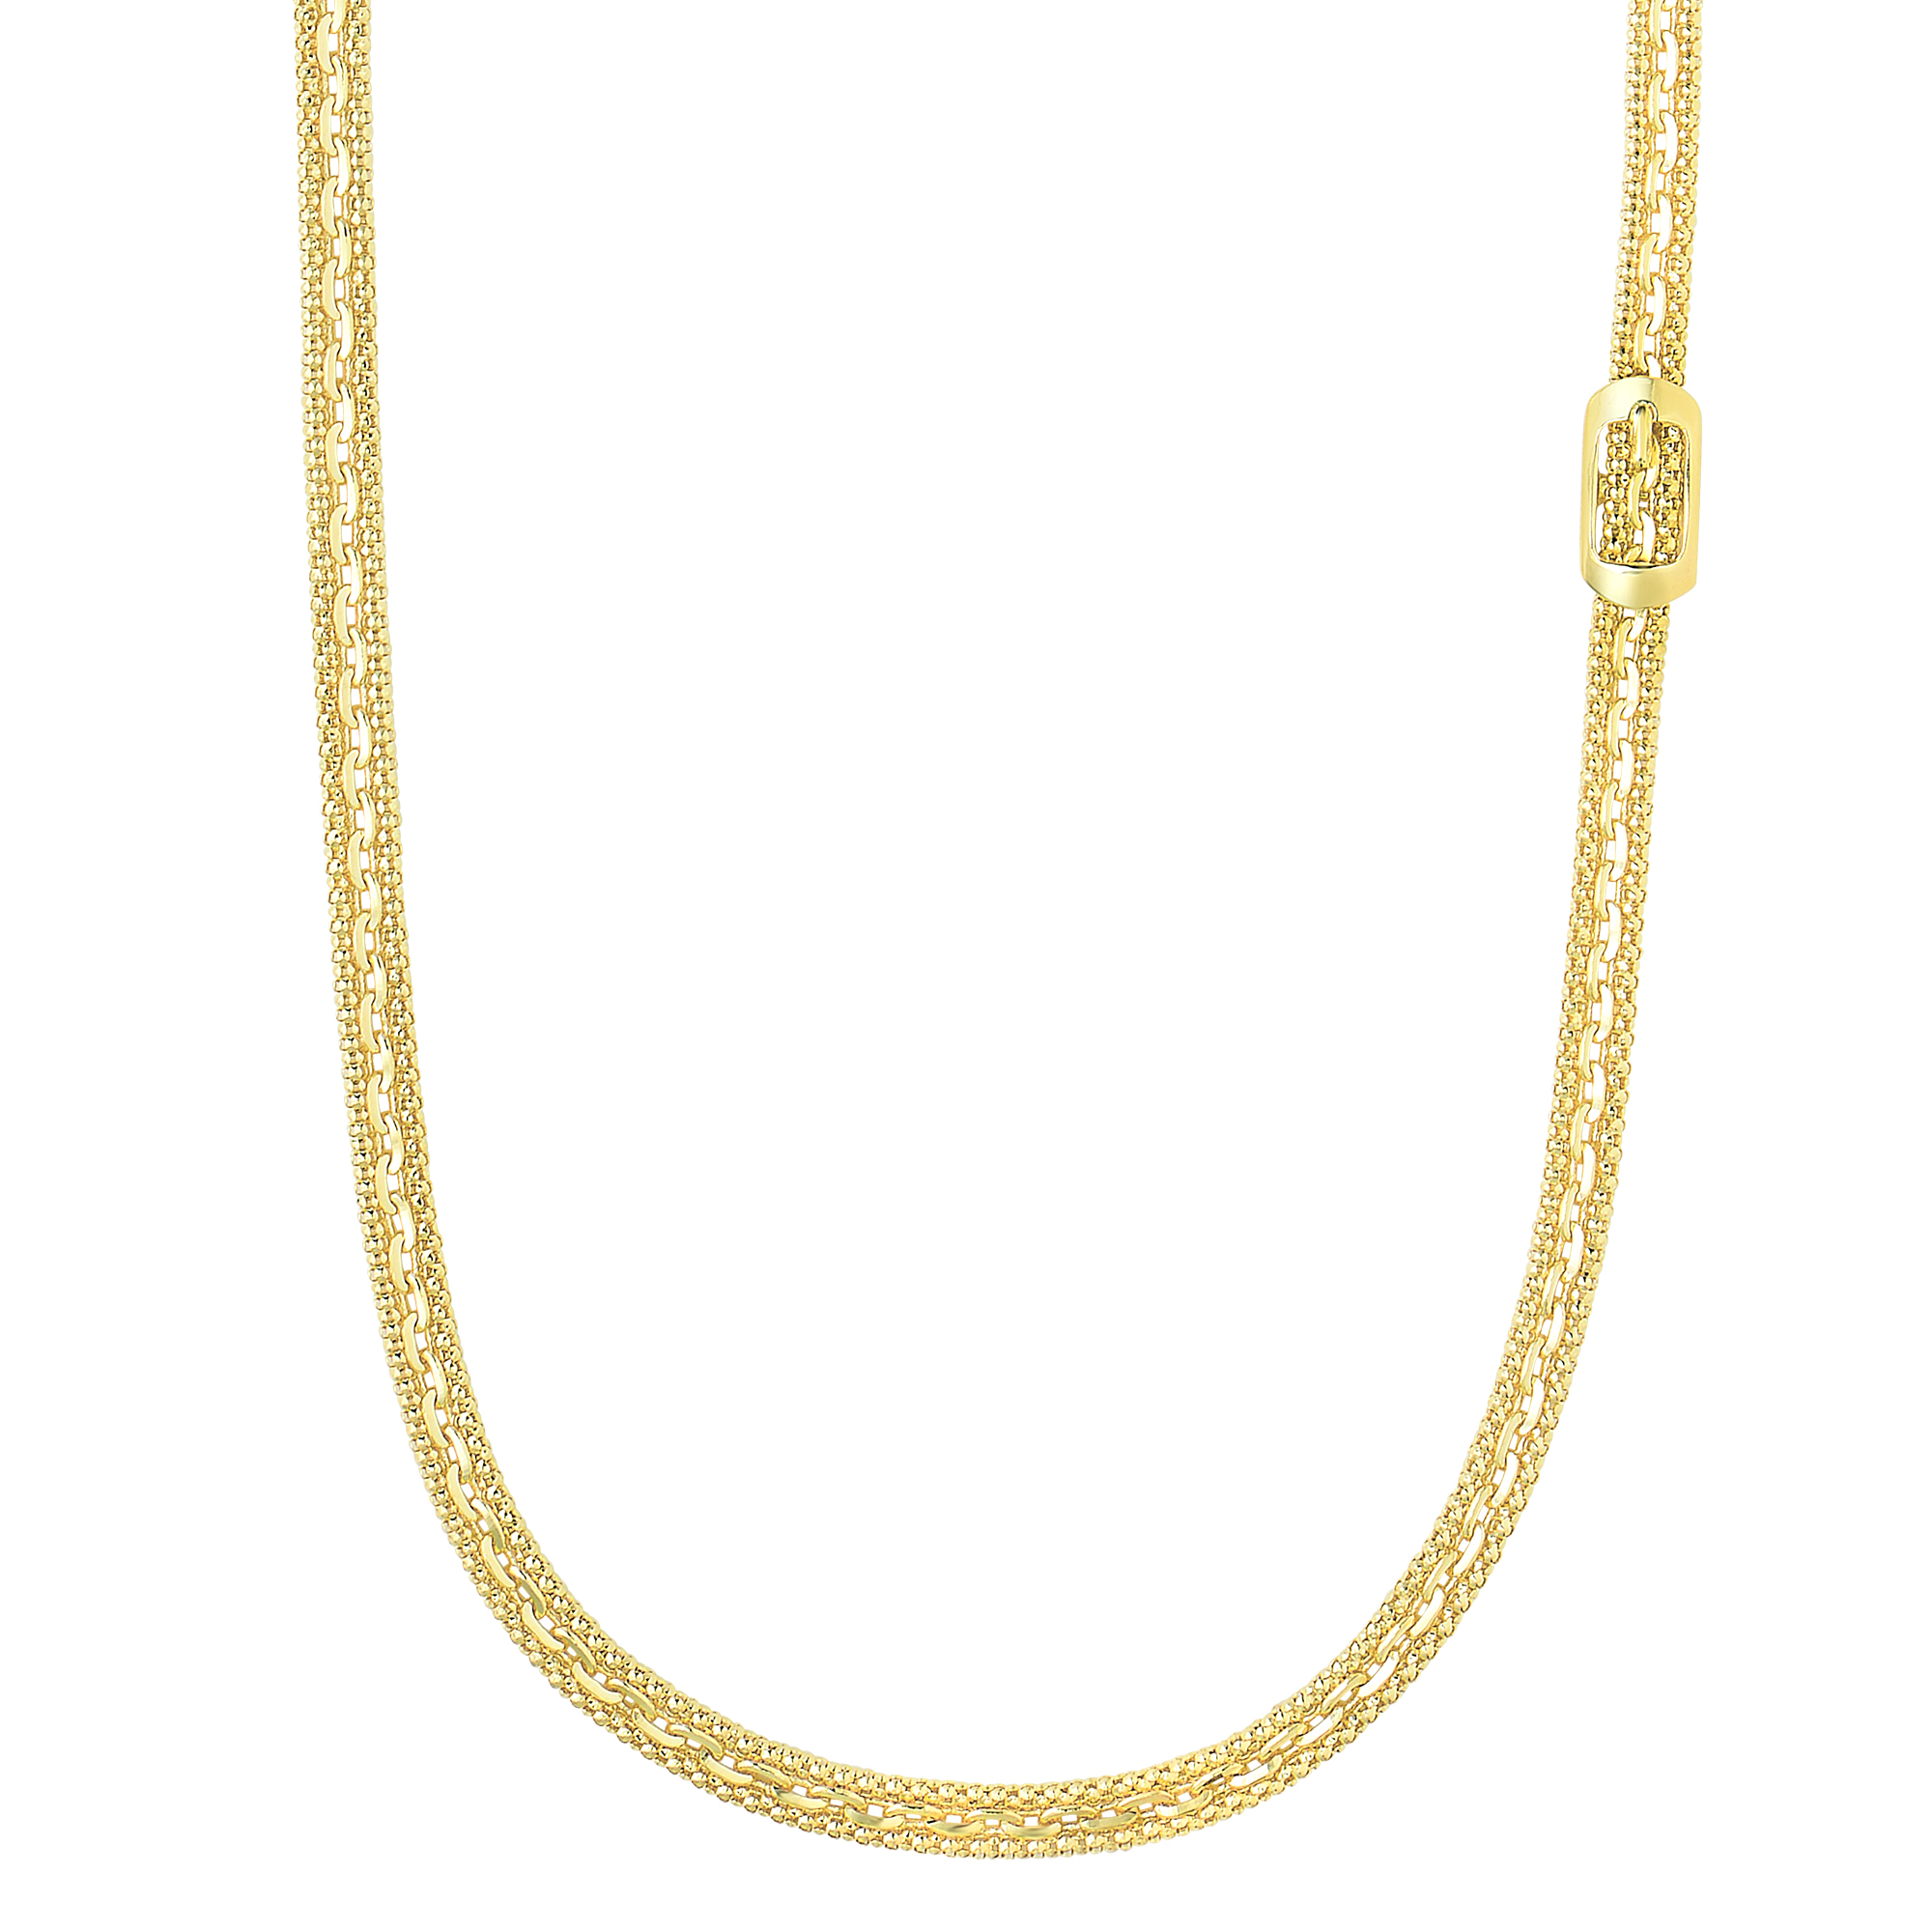 14K Yellow Gold Shiny+Diamond Cut 5.8-3.6mm R ectangle Buckle On Flat Popcorn+Oval Fancy Necklace with Lobster Clasp by Goldia